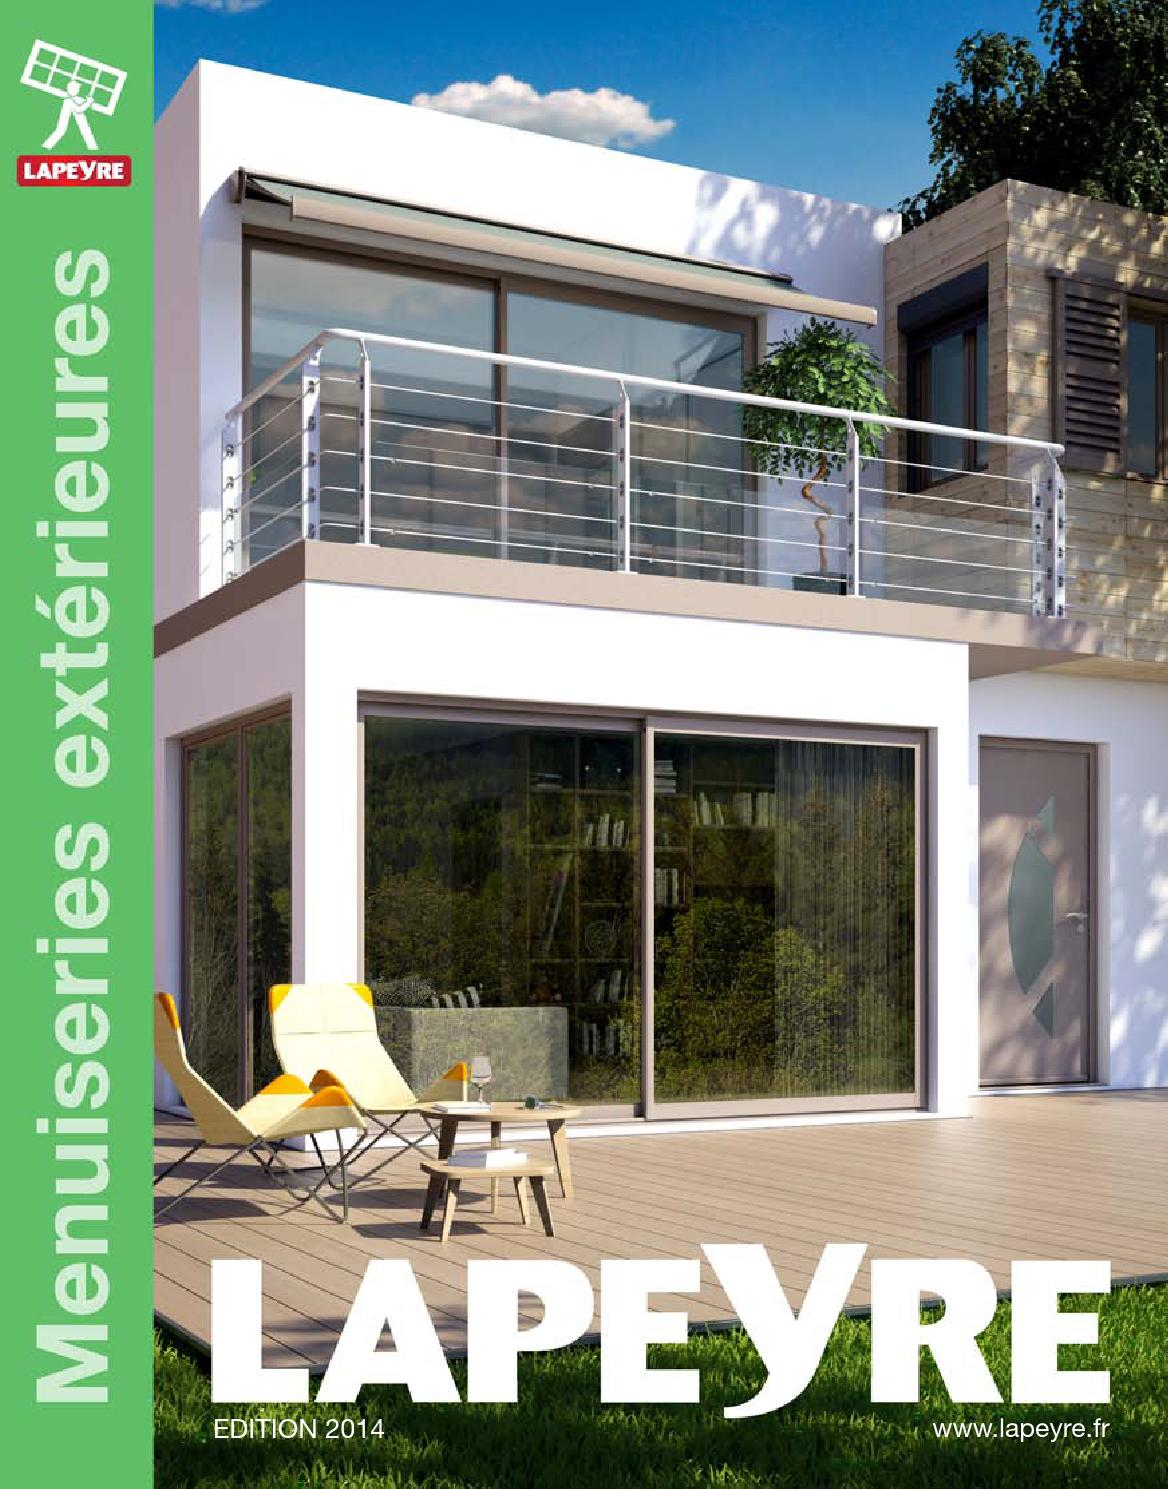 catalogue lapeyre menuiseries ext rieurs 2014 by joe monroe issuu. Black Bedroom Furniture Sets. Home Design Ideas